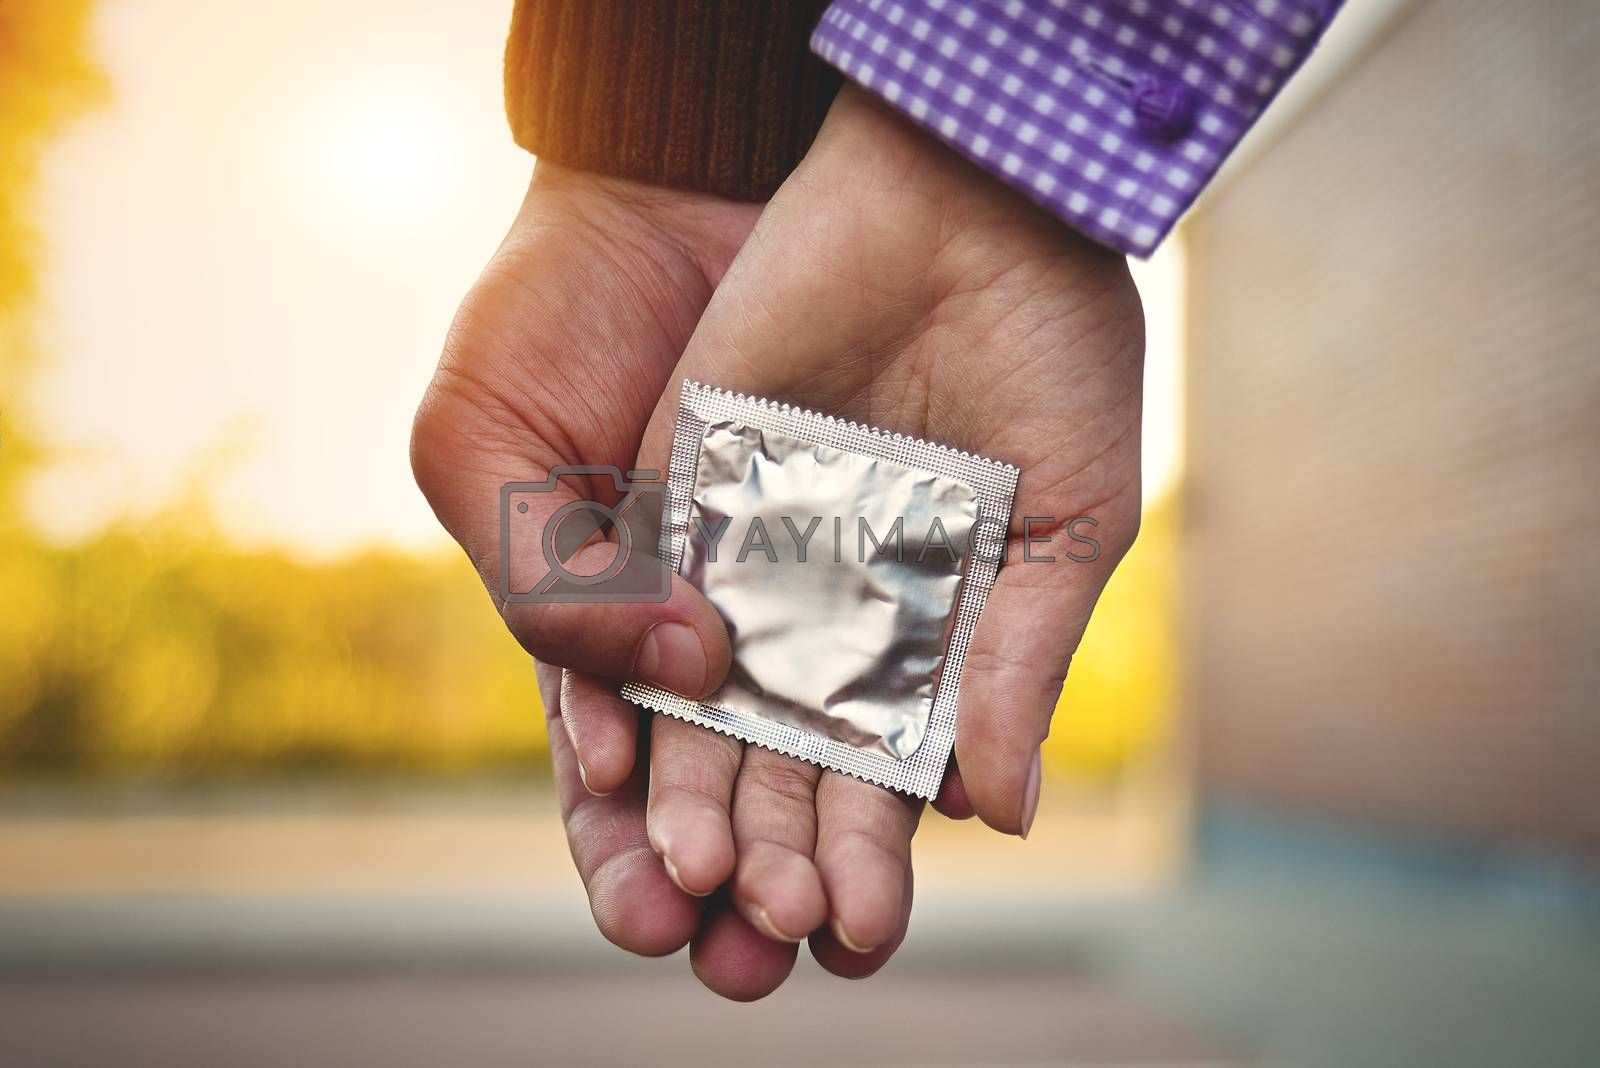 Men, women, couples Holding a condom for self-protection. Concept to prevent contraception.